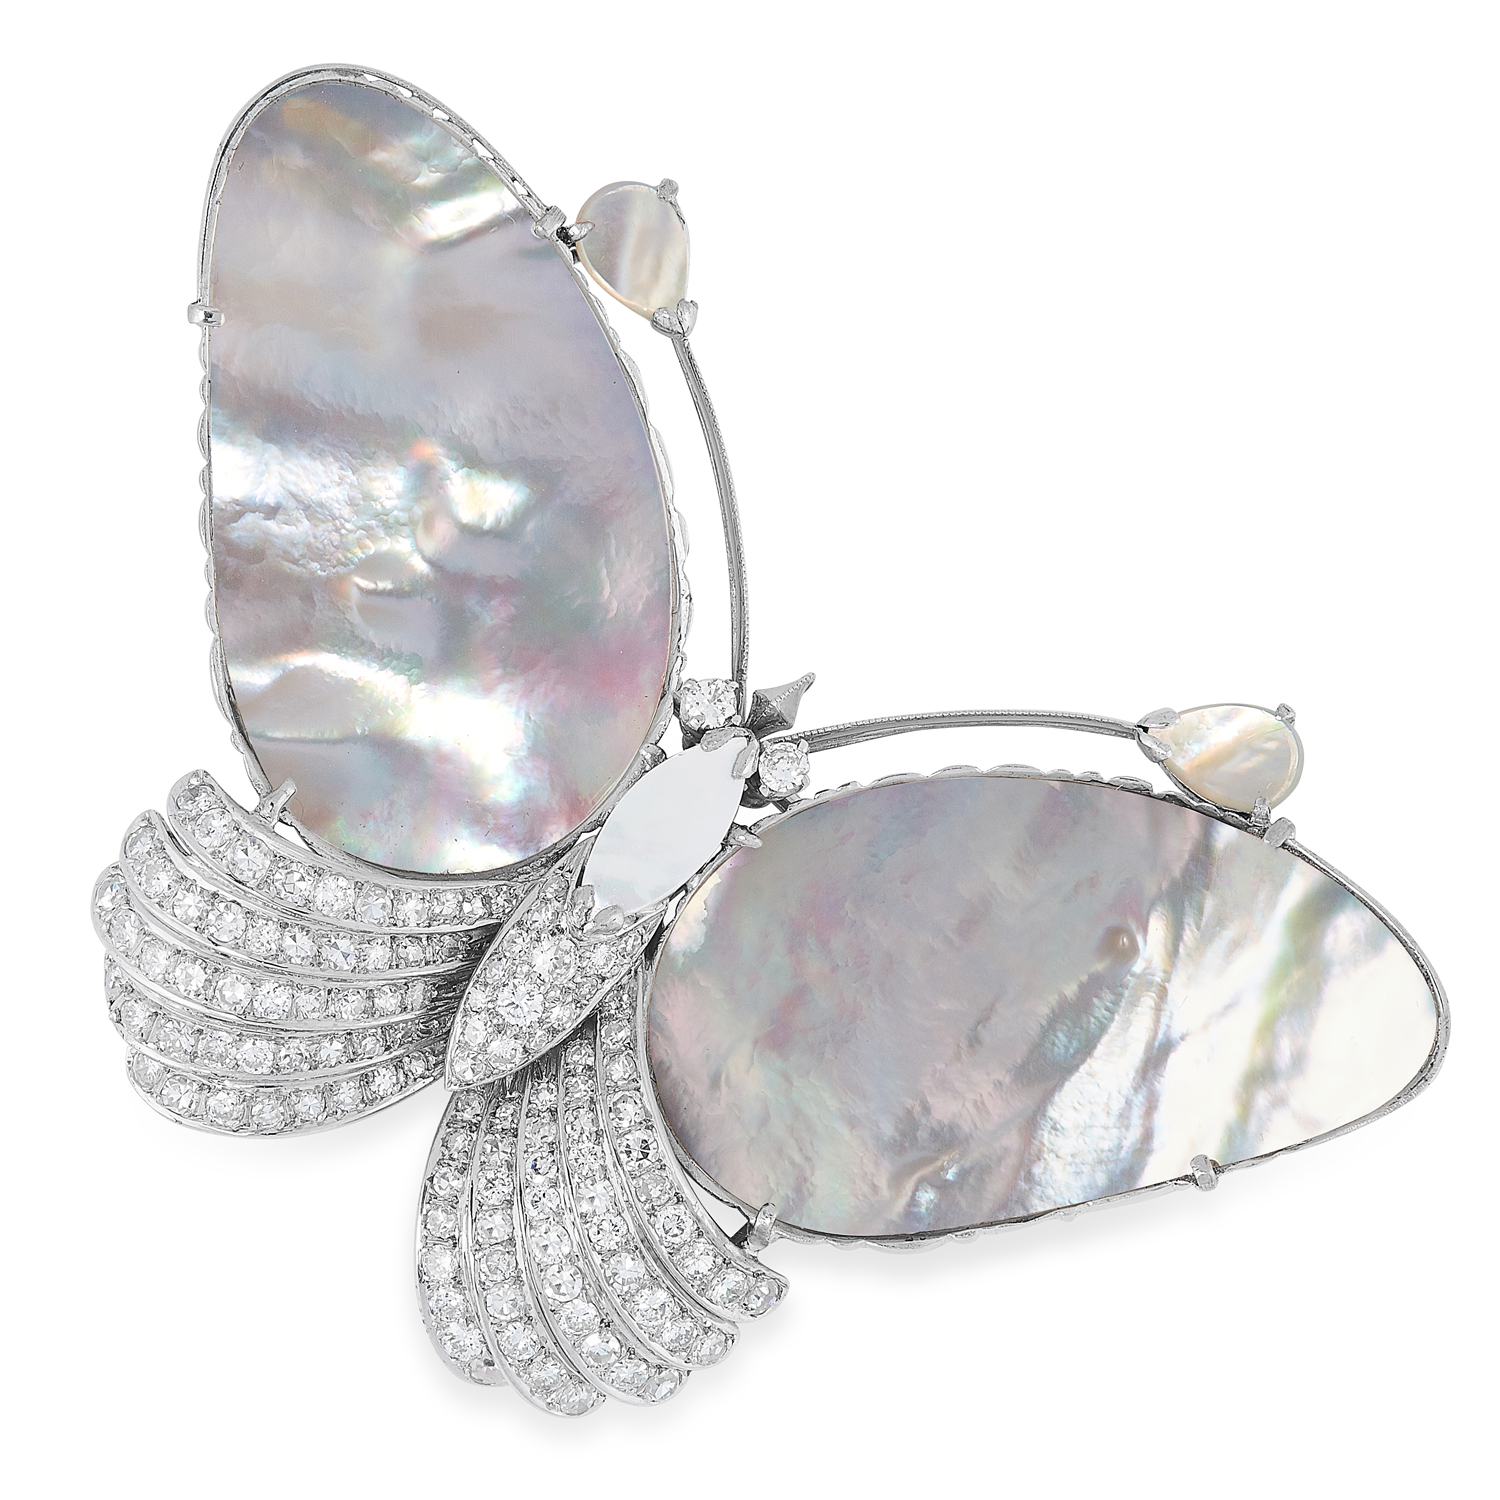 A DIAMOND AND MOTHER OF PEARL BUTTERFLY BROOCH set